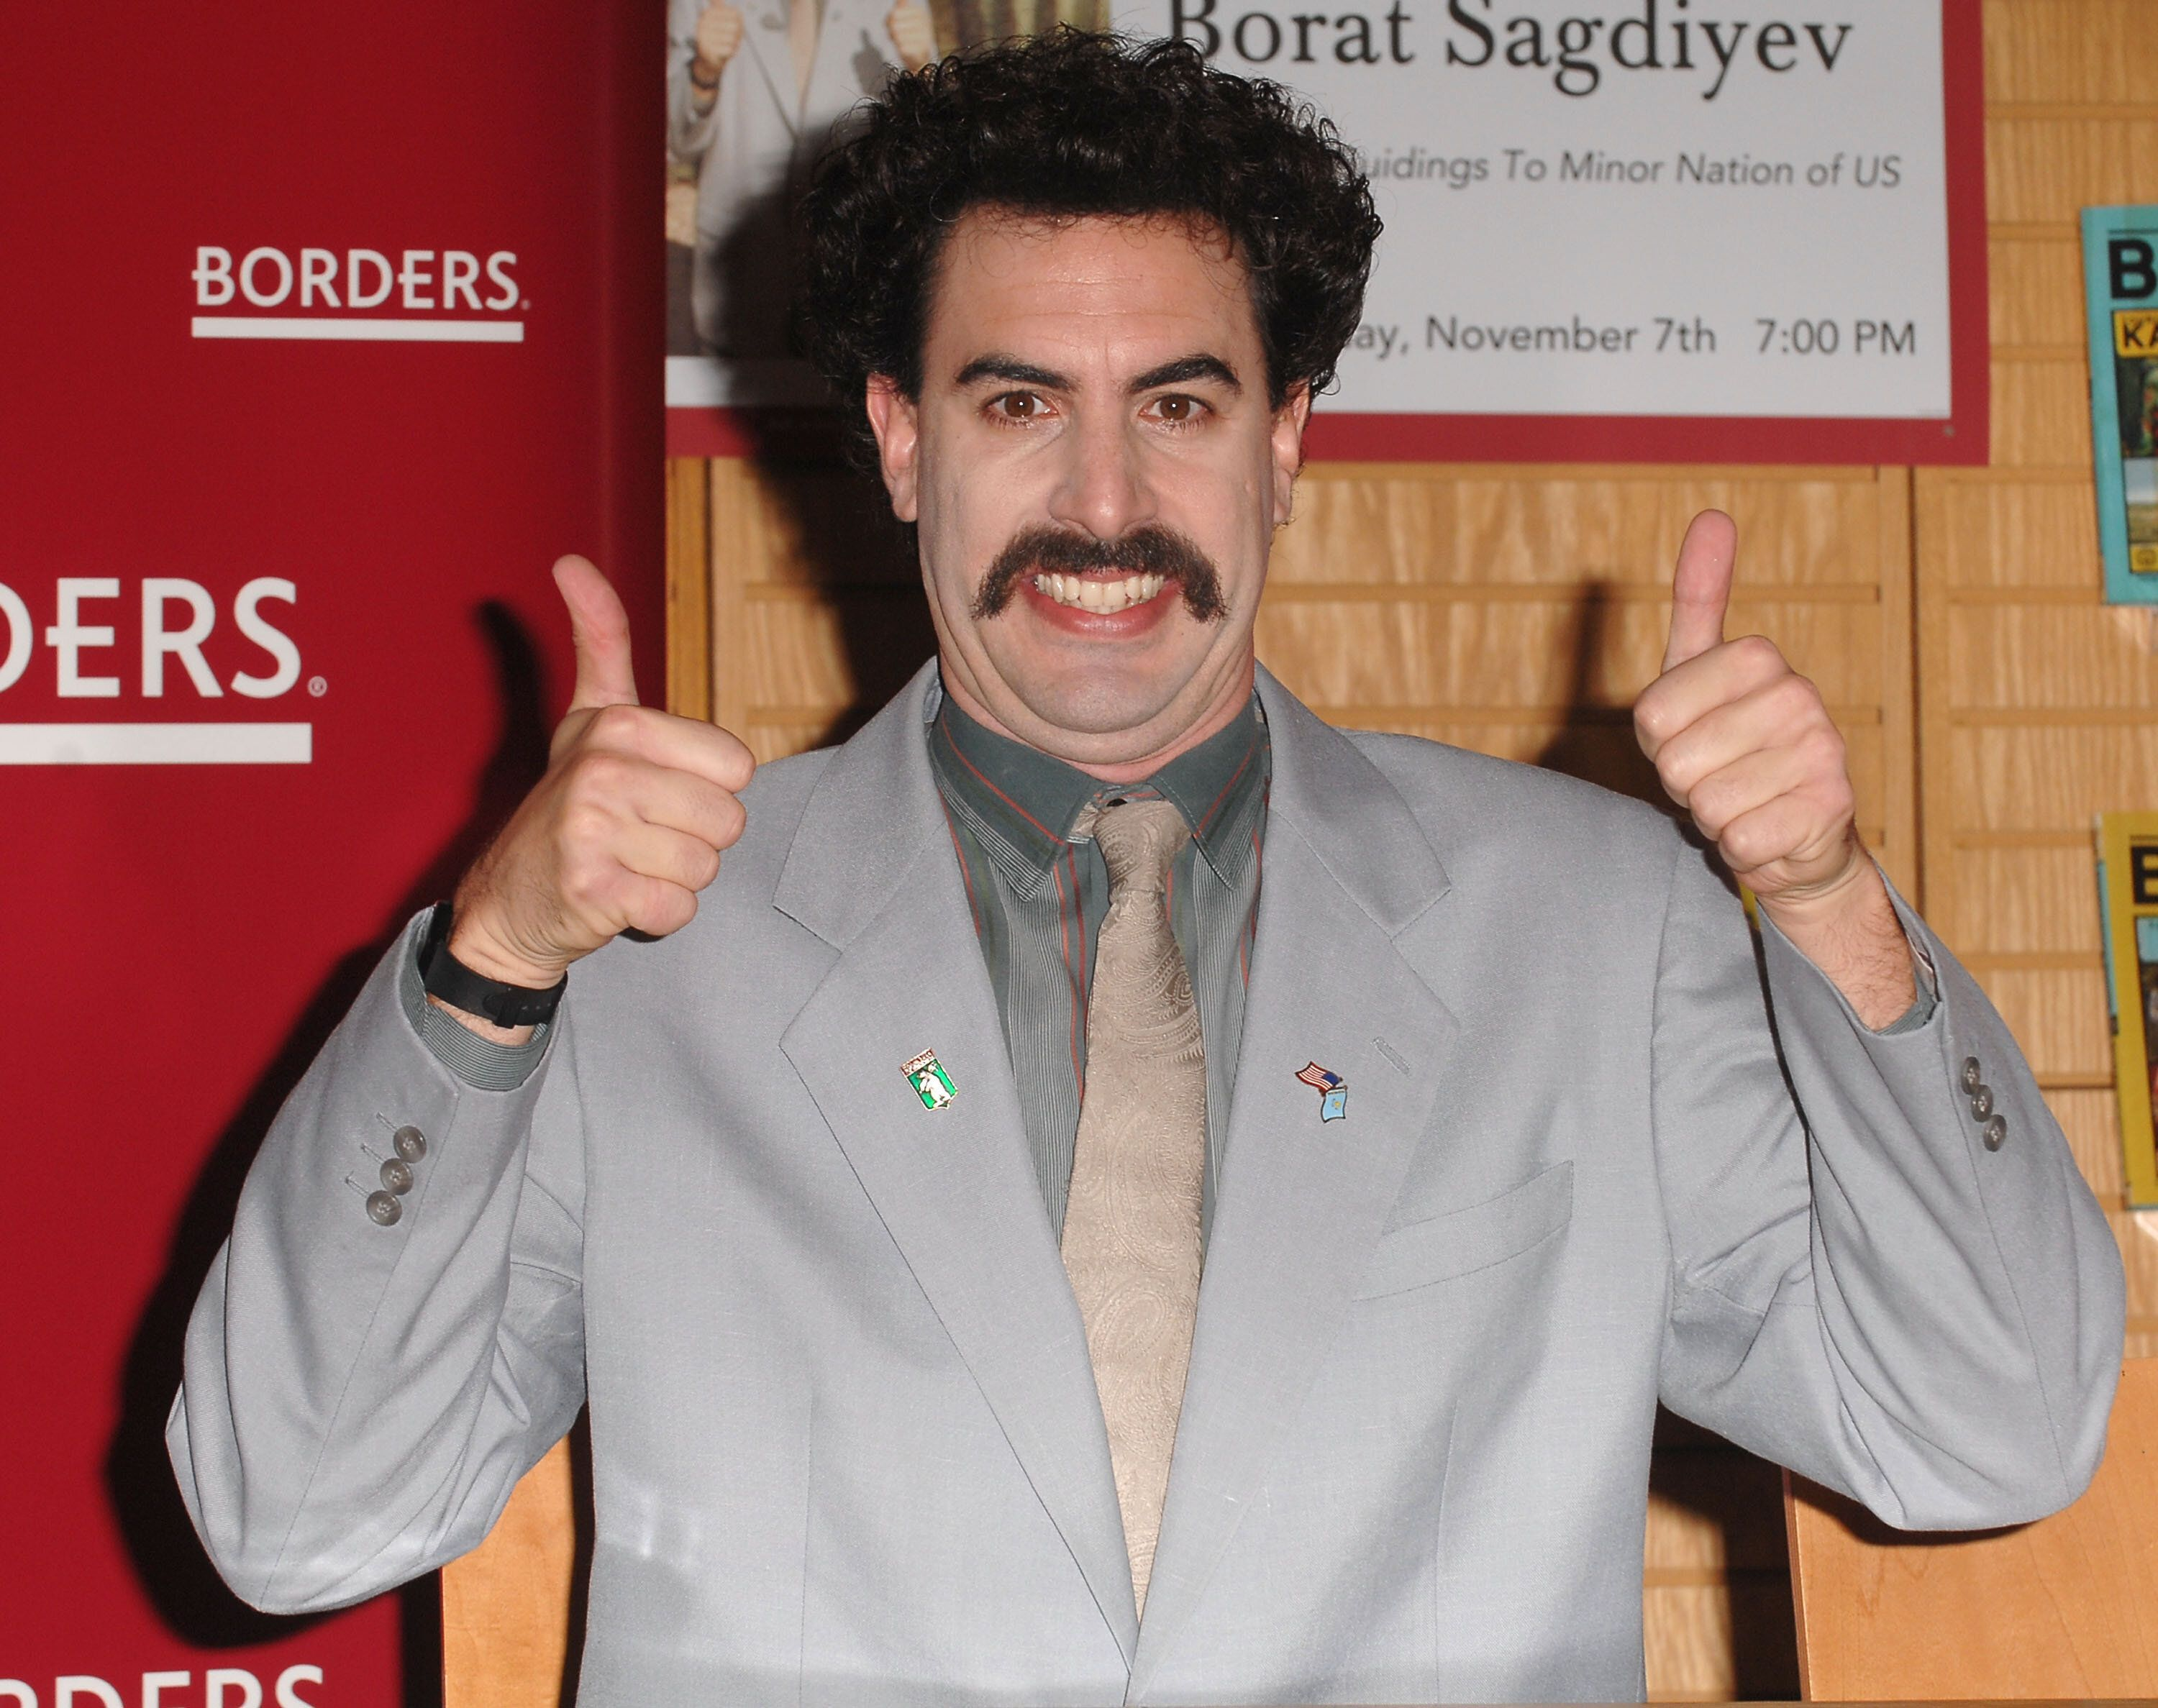 WESTWOOD, CA - NOVEMBER 07:  Sacha Baron Cohen aka Borat attends his book signing at Borders Book Store on November 7, 2007 in Westwood, California.  (Photo by Steve Granitz/WireImage)